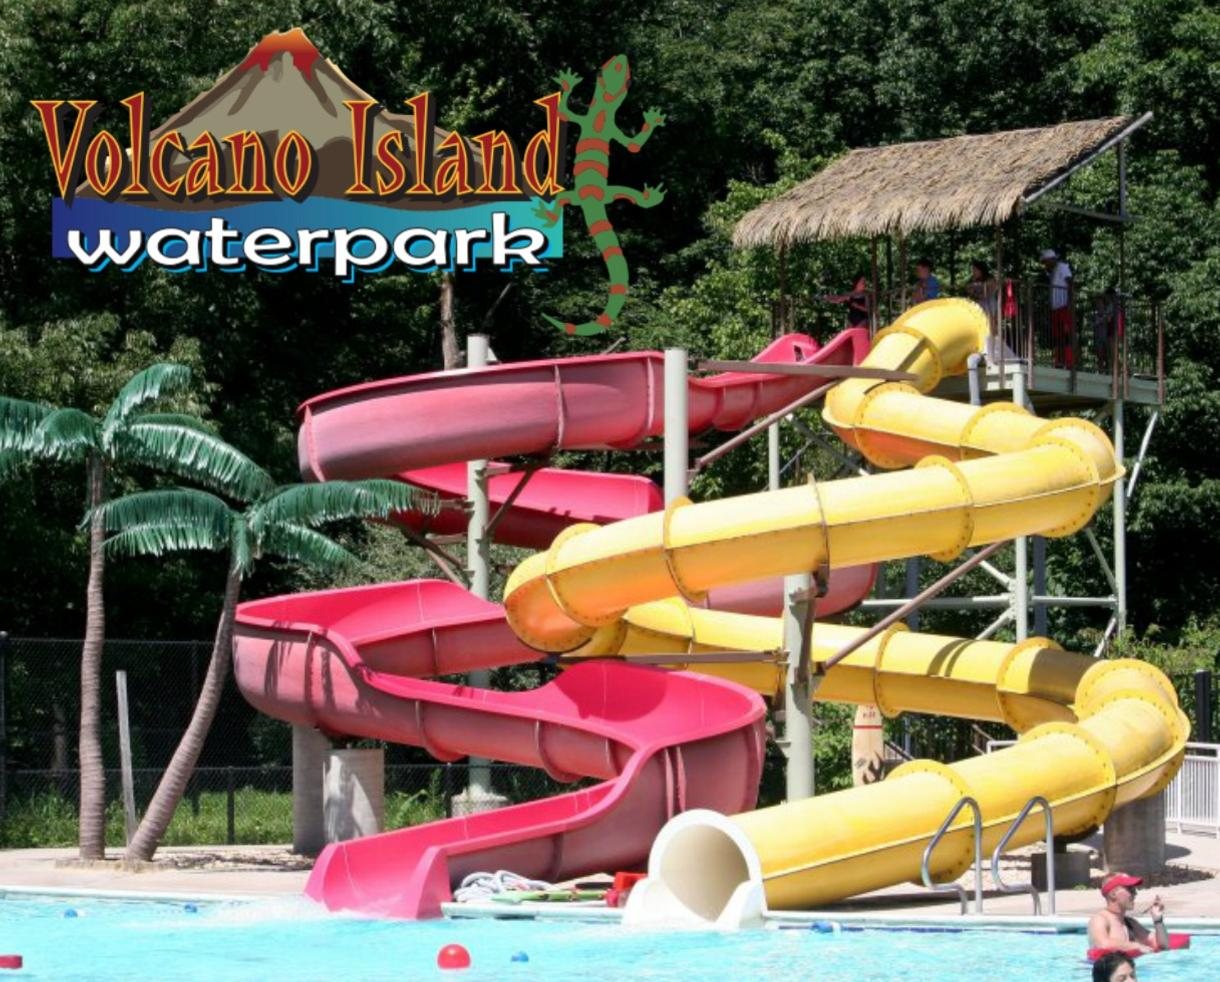 Volcano Island Waterpark Admission